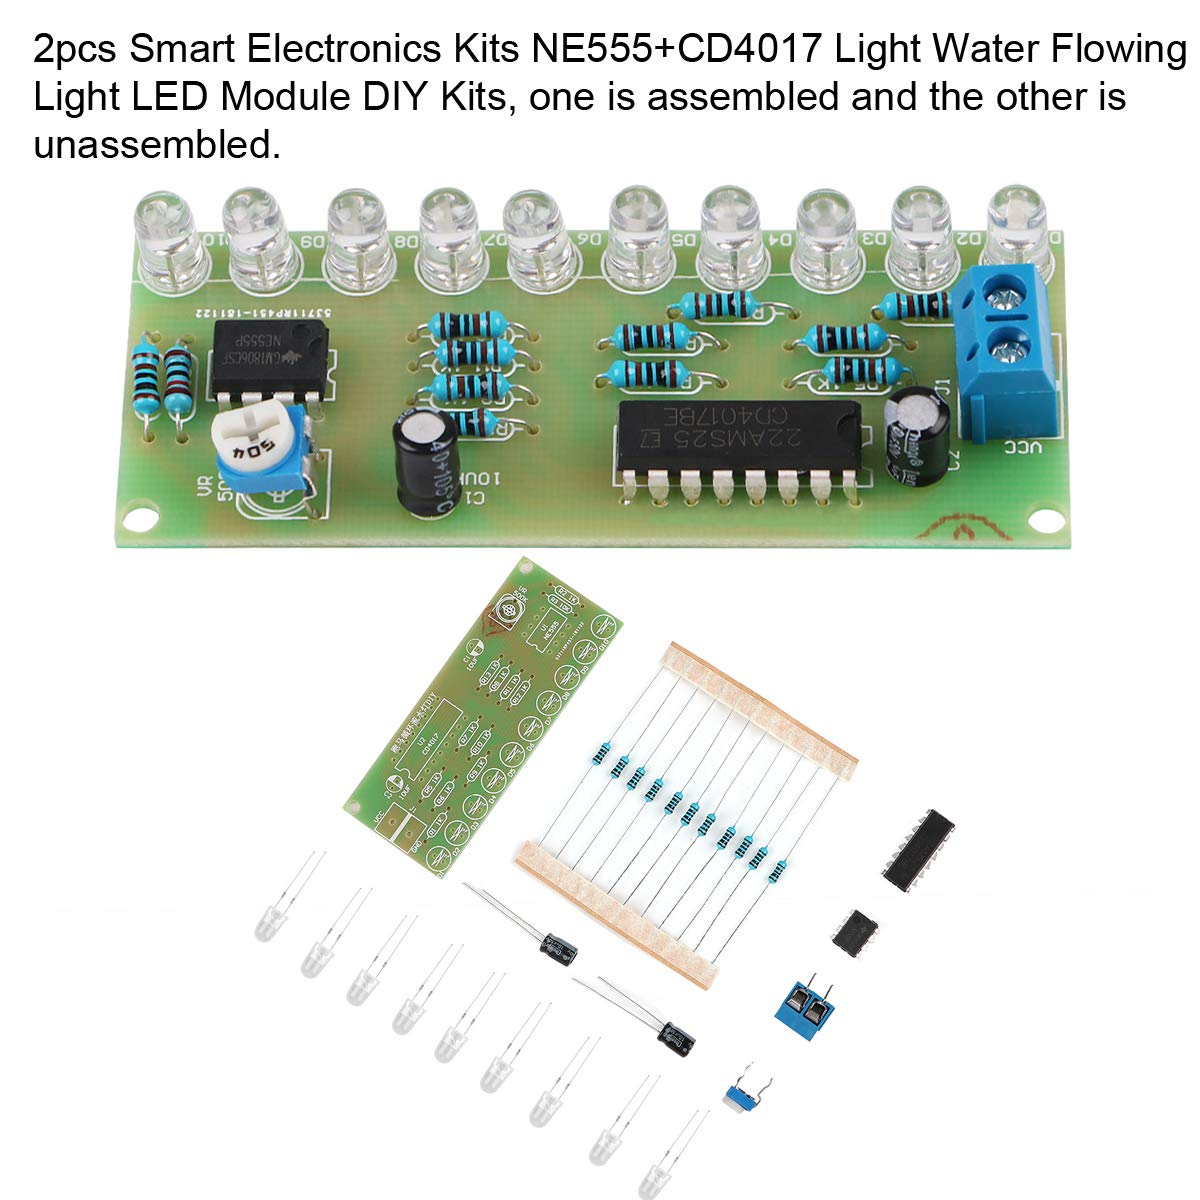 Ne555 Cd4017 Ne555 Driver Water Powered Board Circuit Water Flowing Light Led Electronic Module Diy Kit Running Light Drive Special Summer Sale Electronic Components & Supplies Integrated Circuits